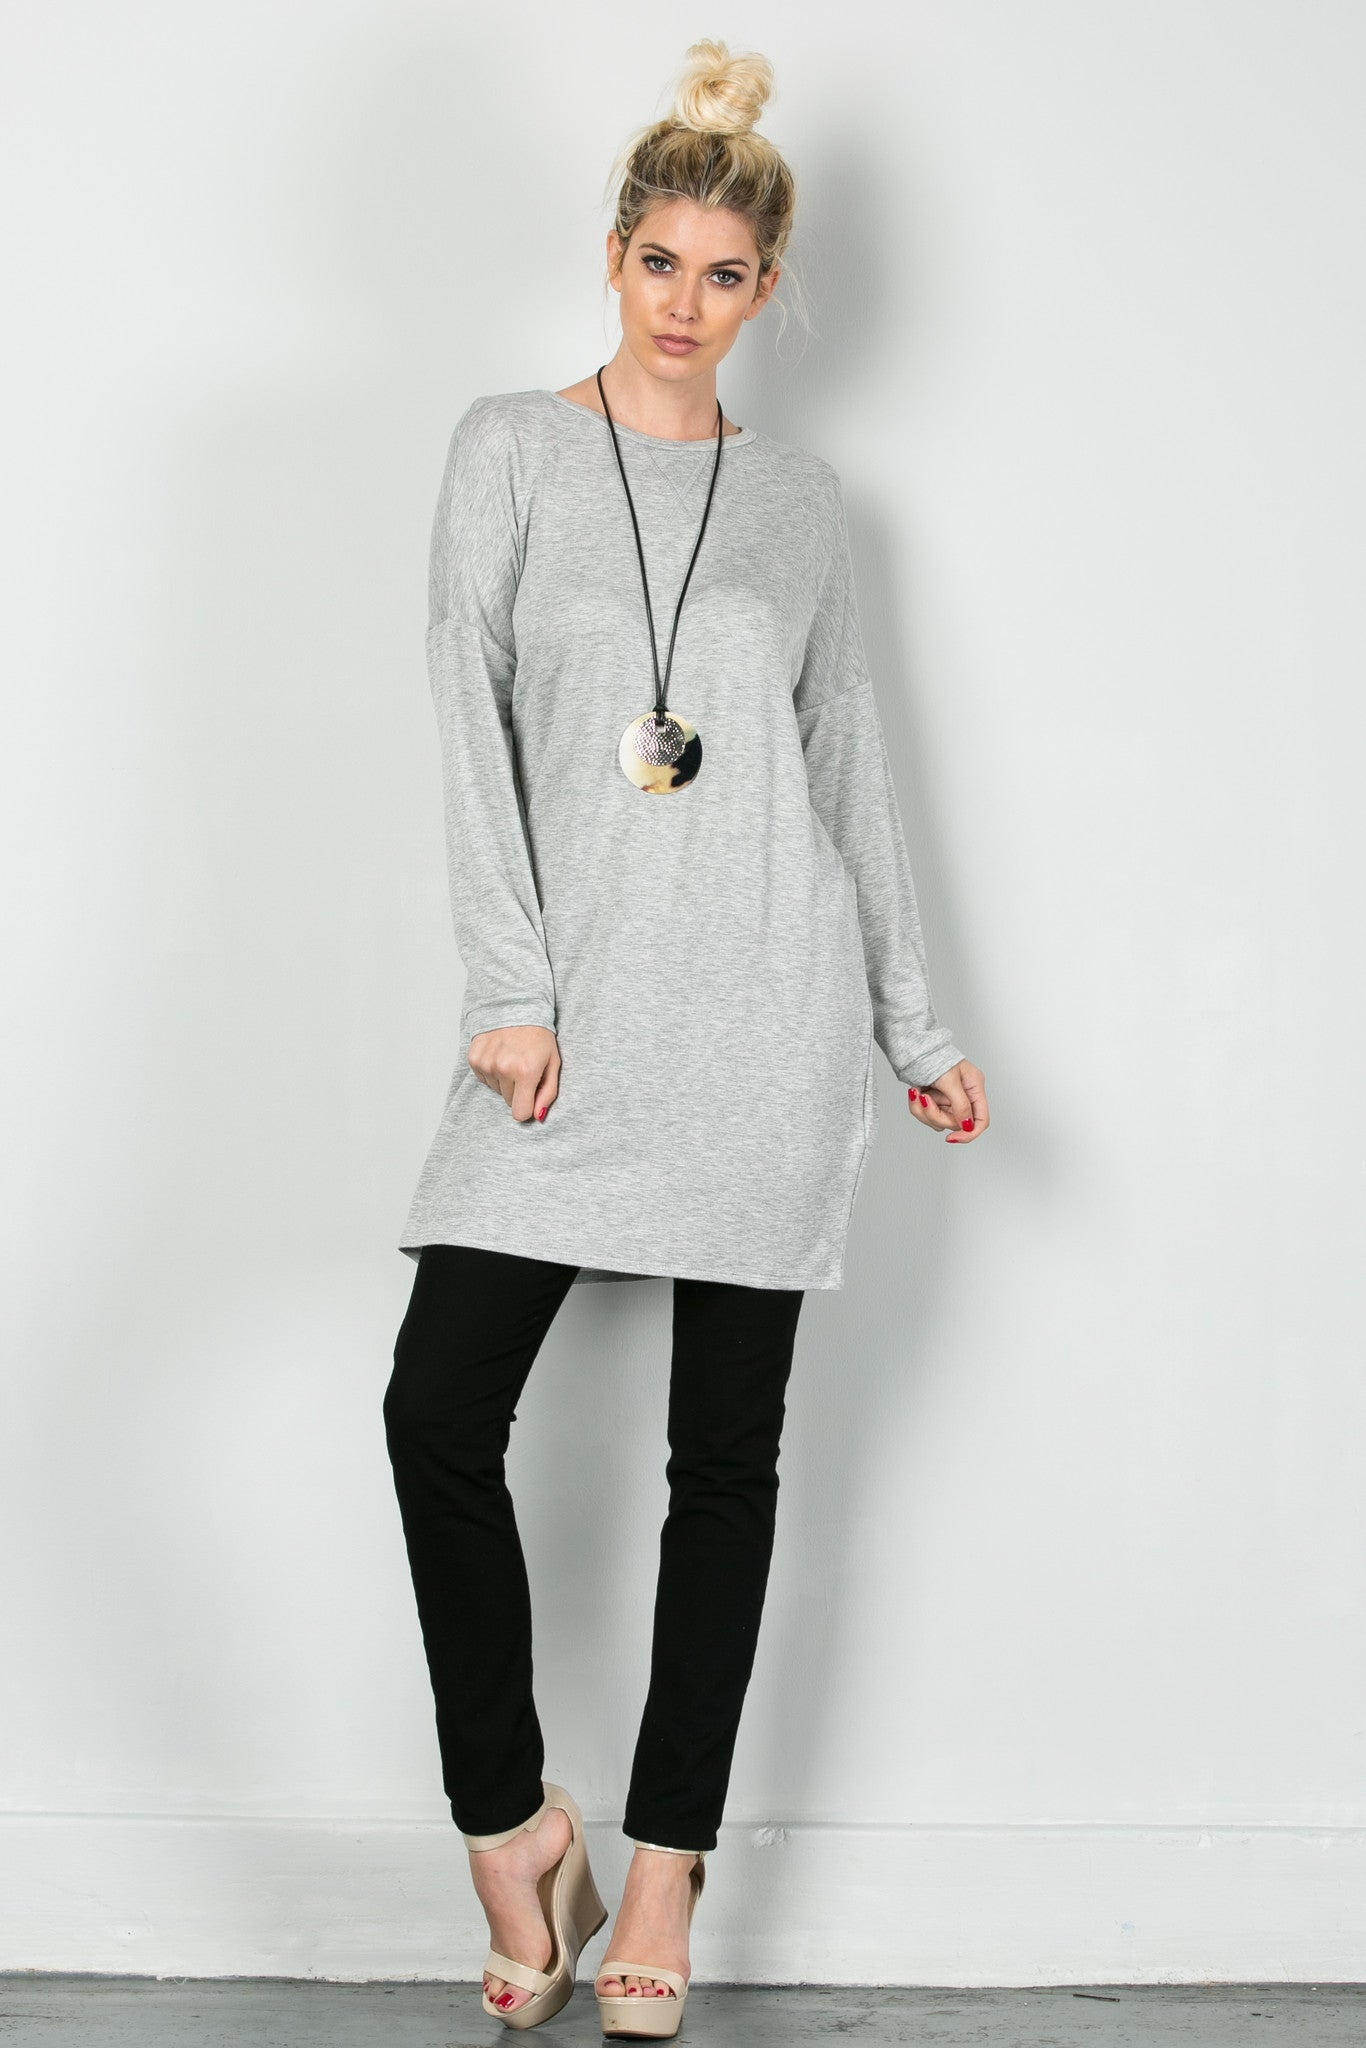 Classic Lazy Top Heather Grey - Tunic - My Yuccie - 5